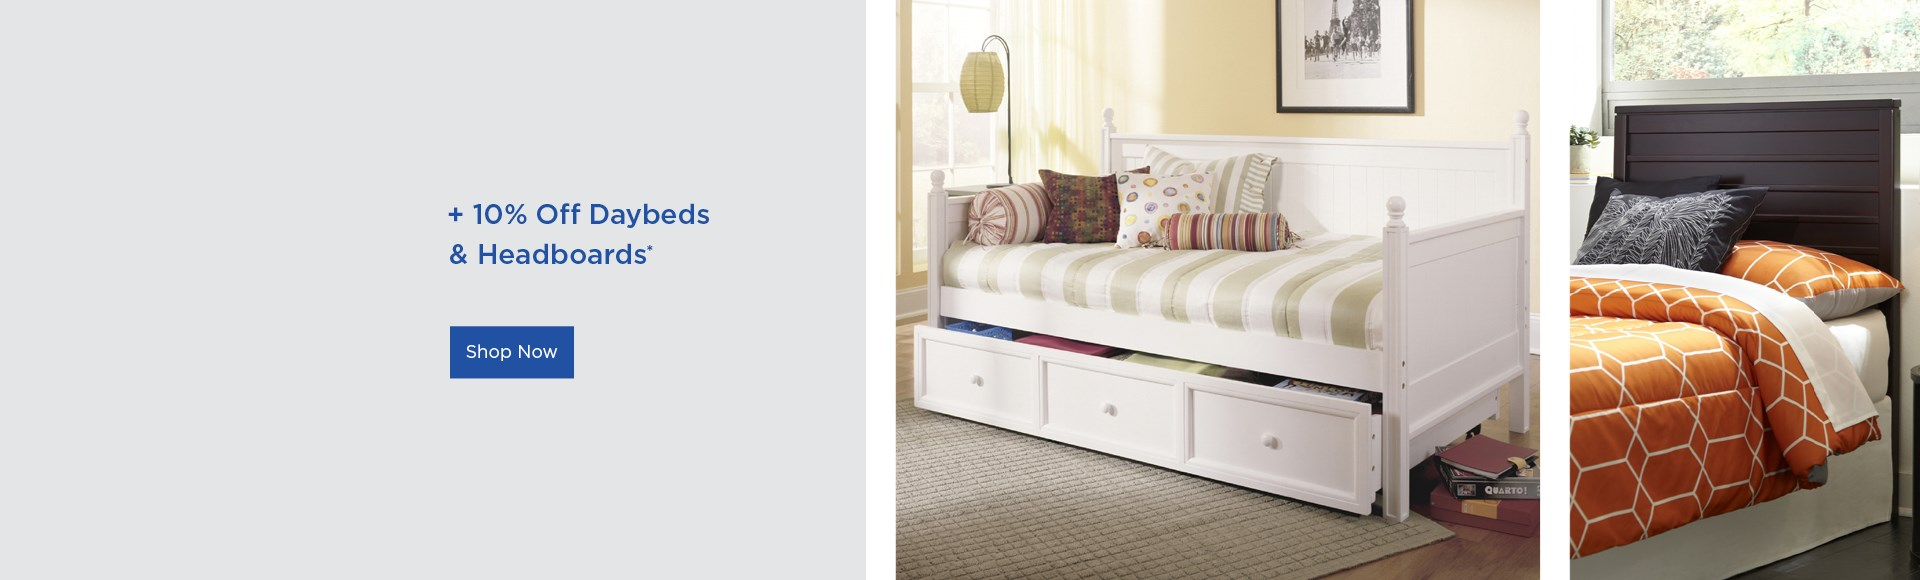 10% off daybeds and headboards